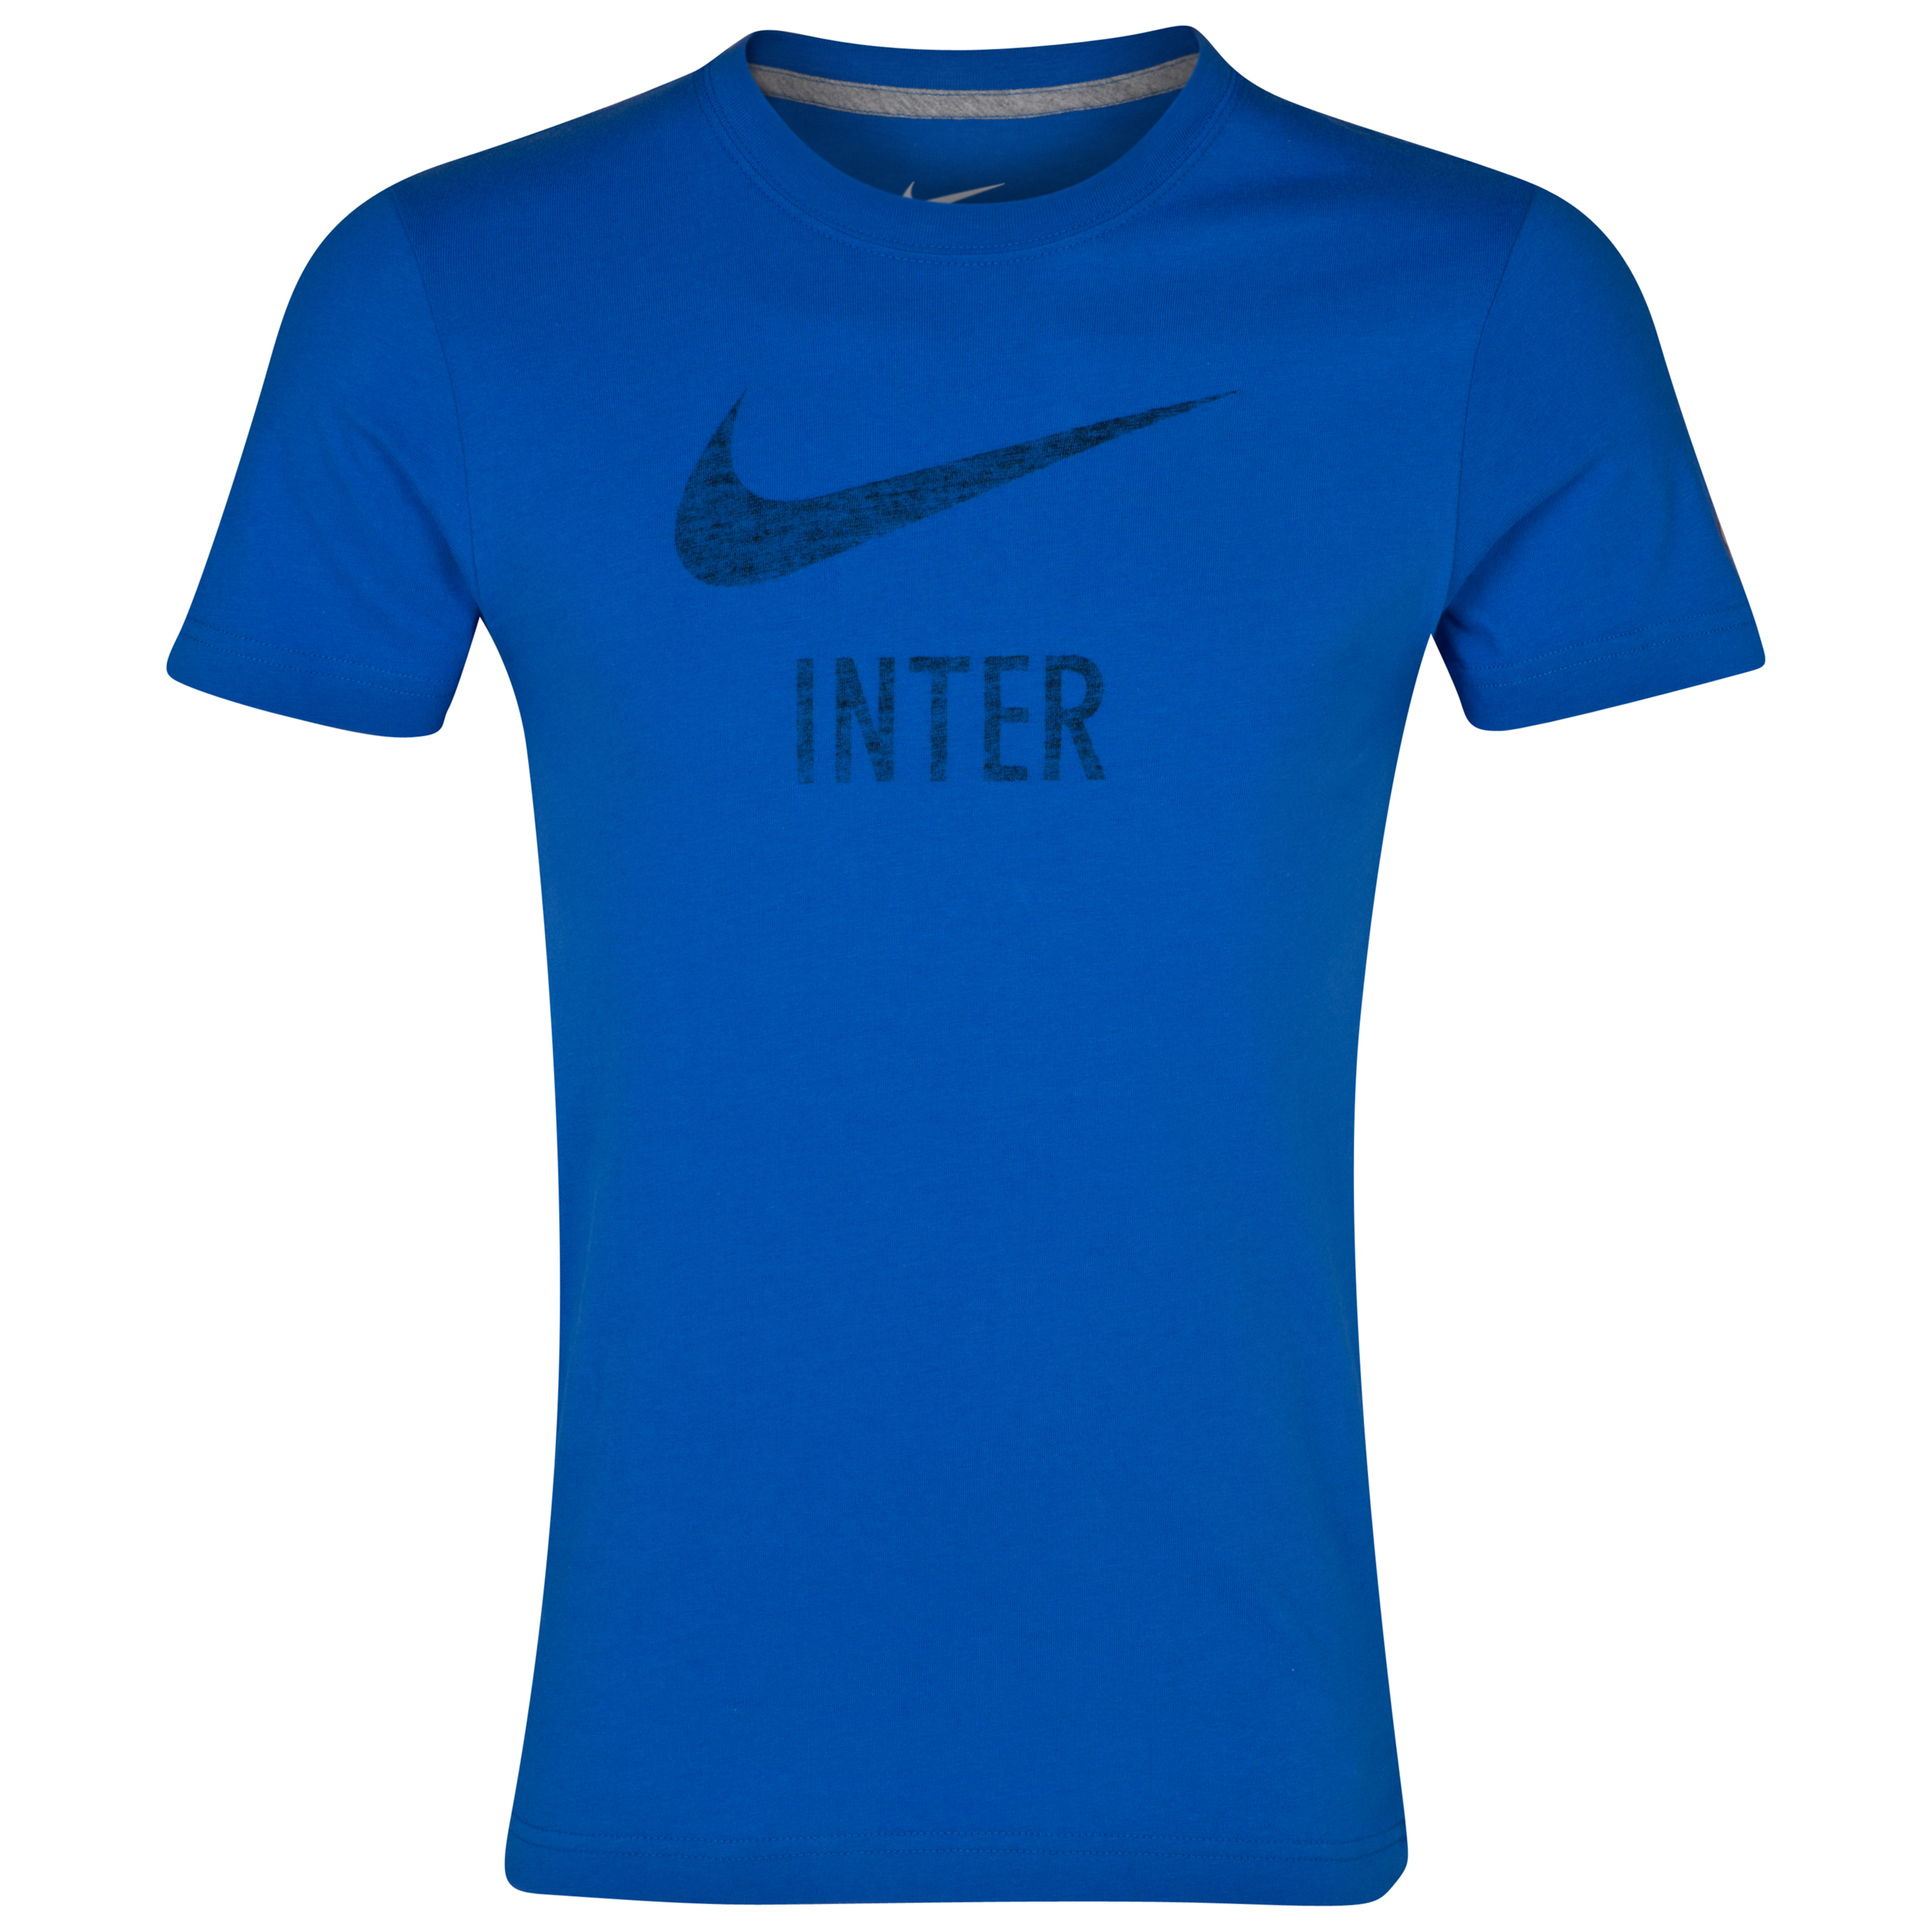 Inter Milan Basic T-Shirt - Royal Blue/Dk Grey Heather